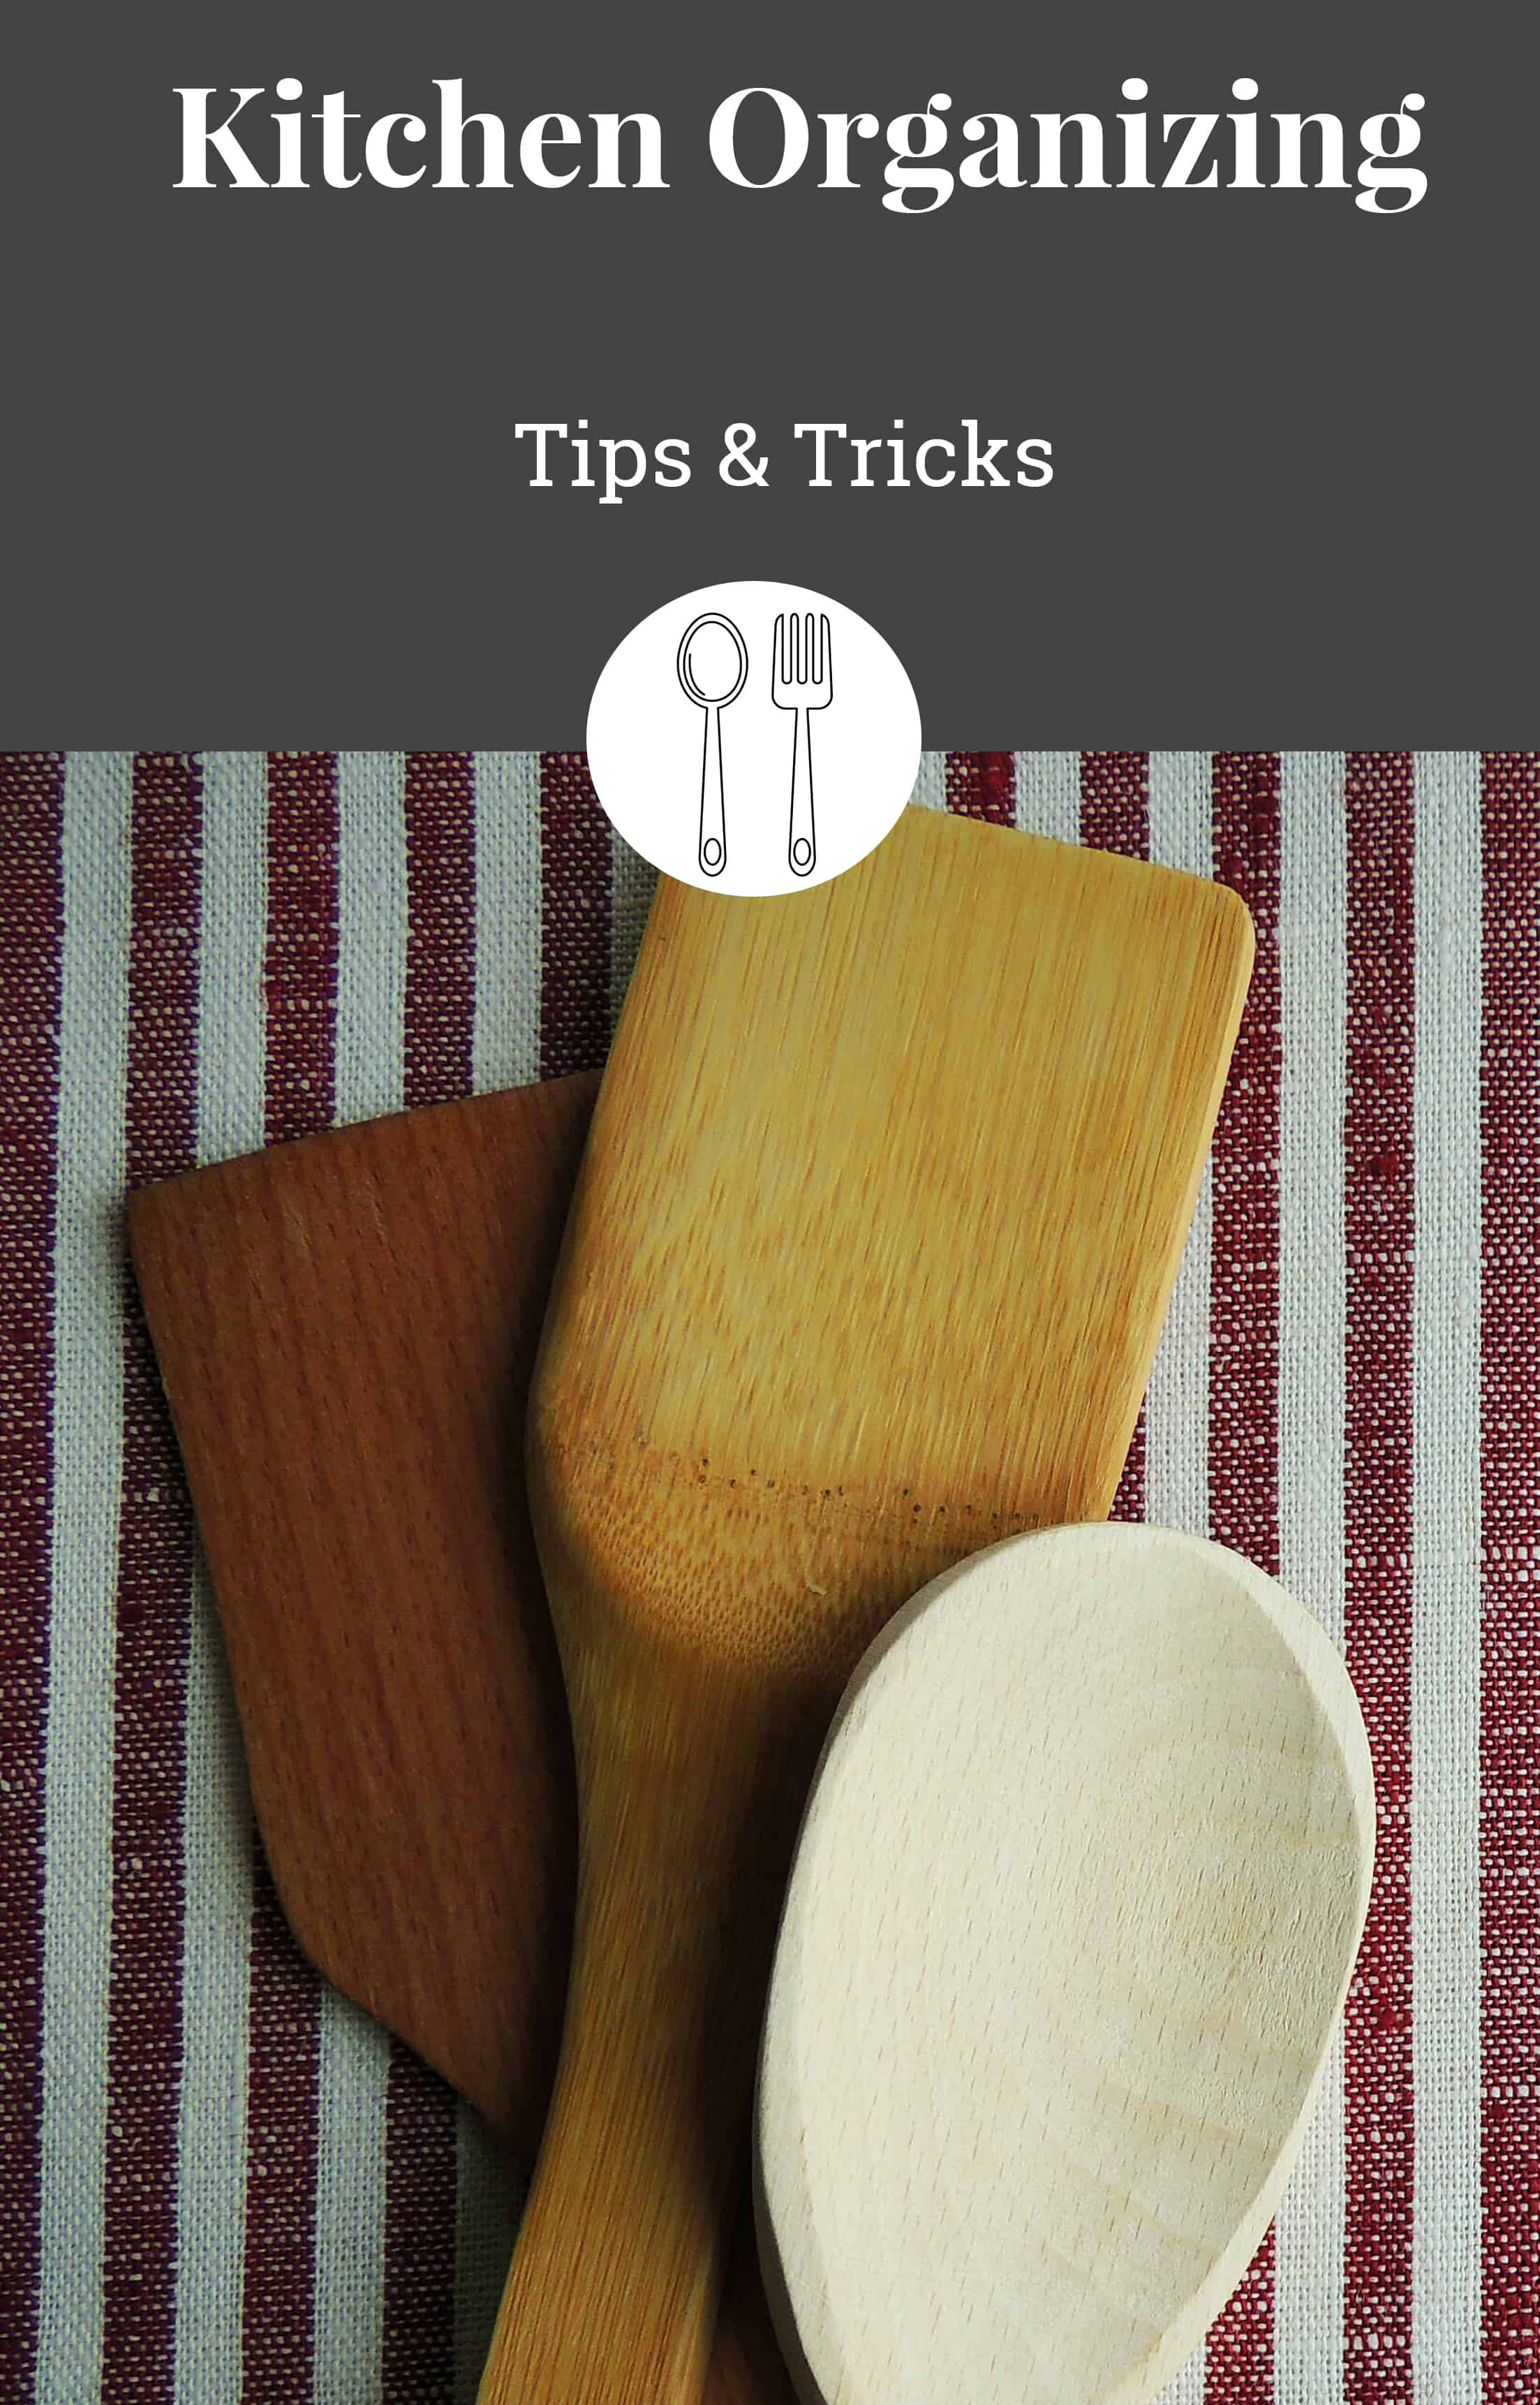 Tips and tricks for kitchen organization, probably the most used room of your home. Having a kitchen organization system in place will make many tasks quicker and easier, leaving you more time for the important things in life. This post is the first part of our series on tips and tricks for organizing every part of your home.